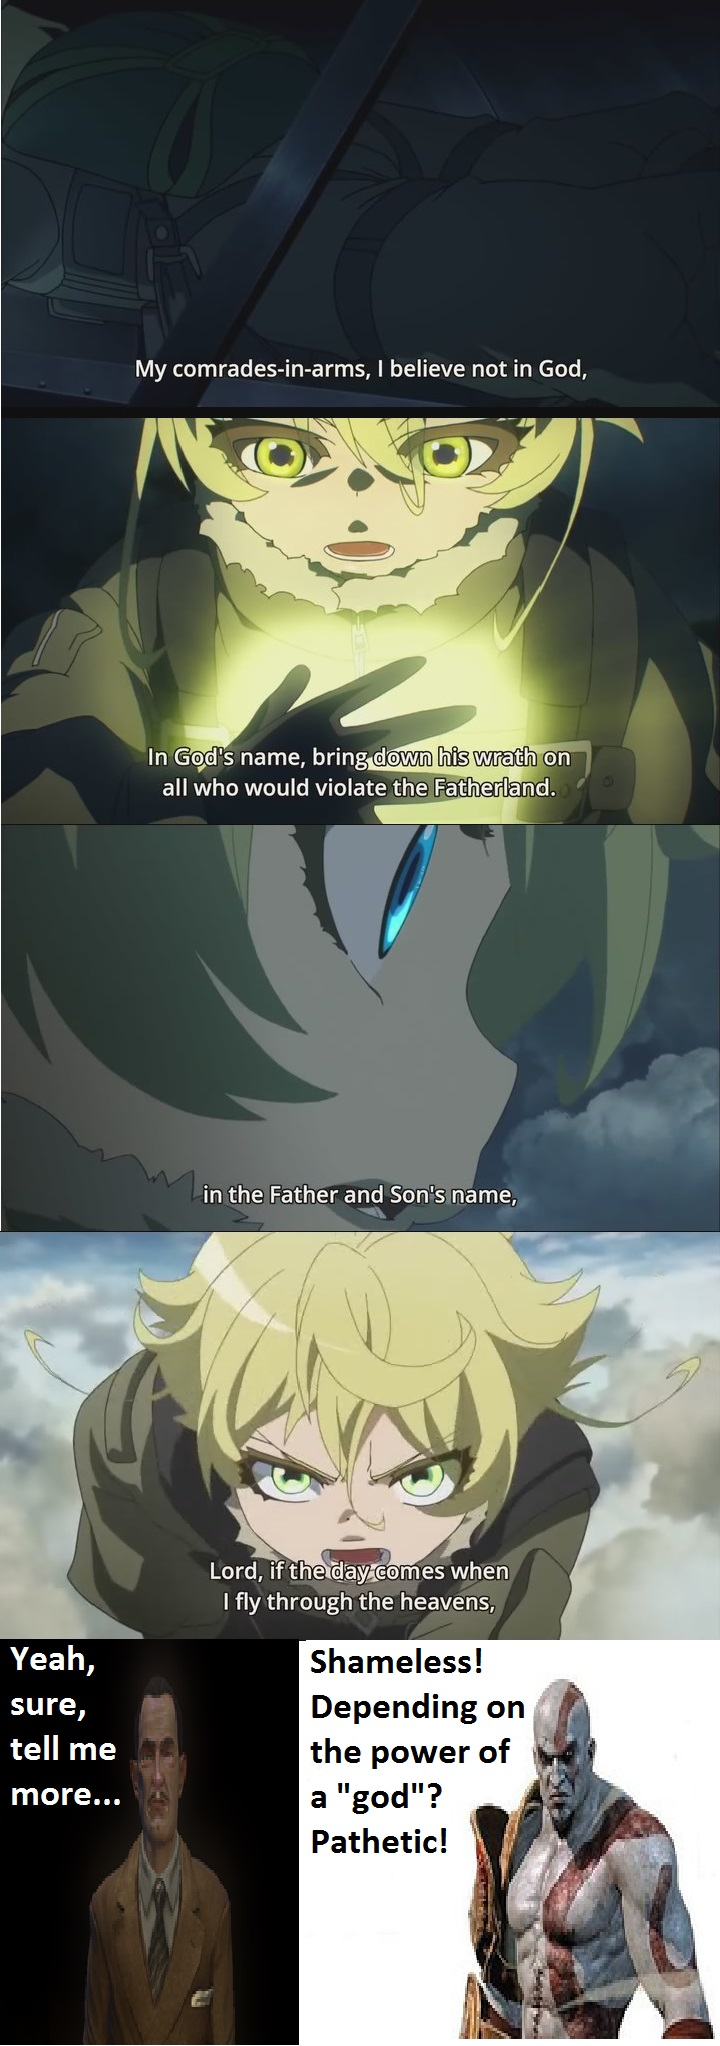 watch_youjo_senki_episode_9_english_subbedat_gogoanime_0001.jpg